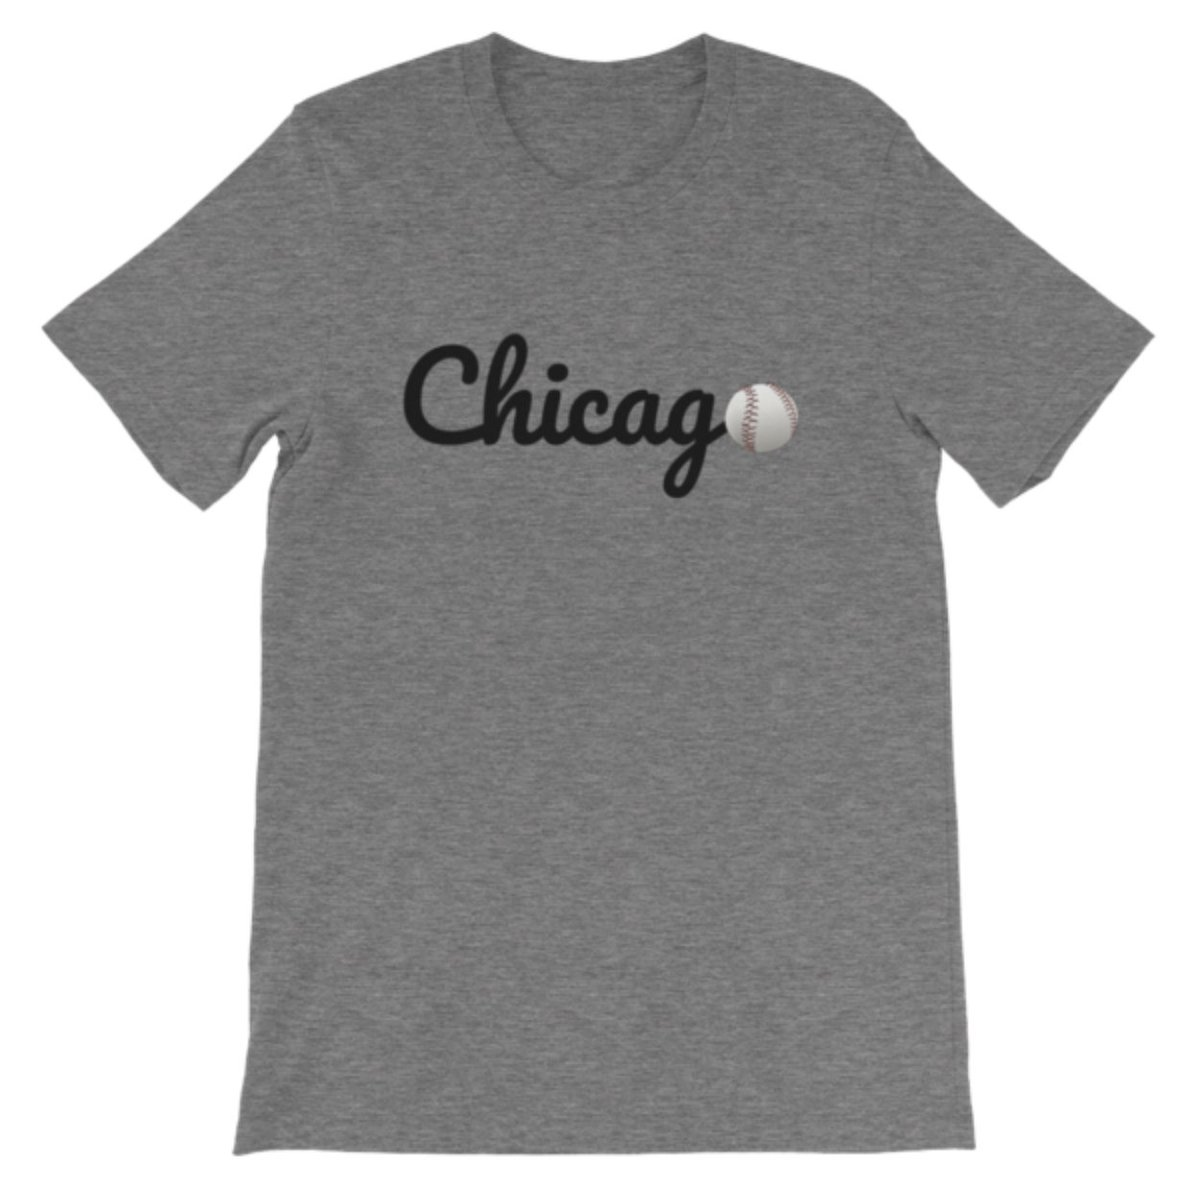 Gear up for spring ⚾️ . https://t.co/VjhcWRn9PC . #allographictees #SoxSocial #SoxFest2019 #soxwinterweekend #whitesox #chicagowhitesox #chisox #whitesoxbaseball #chisoxbaseball #southsiders #shouthsidebaseball #whitesoxfest #baseball #springtraining #baseballislife #AuthenticFan https://t.co/t03eJdtBlf